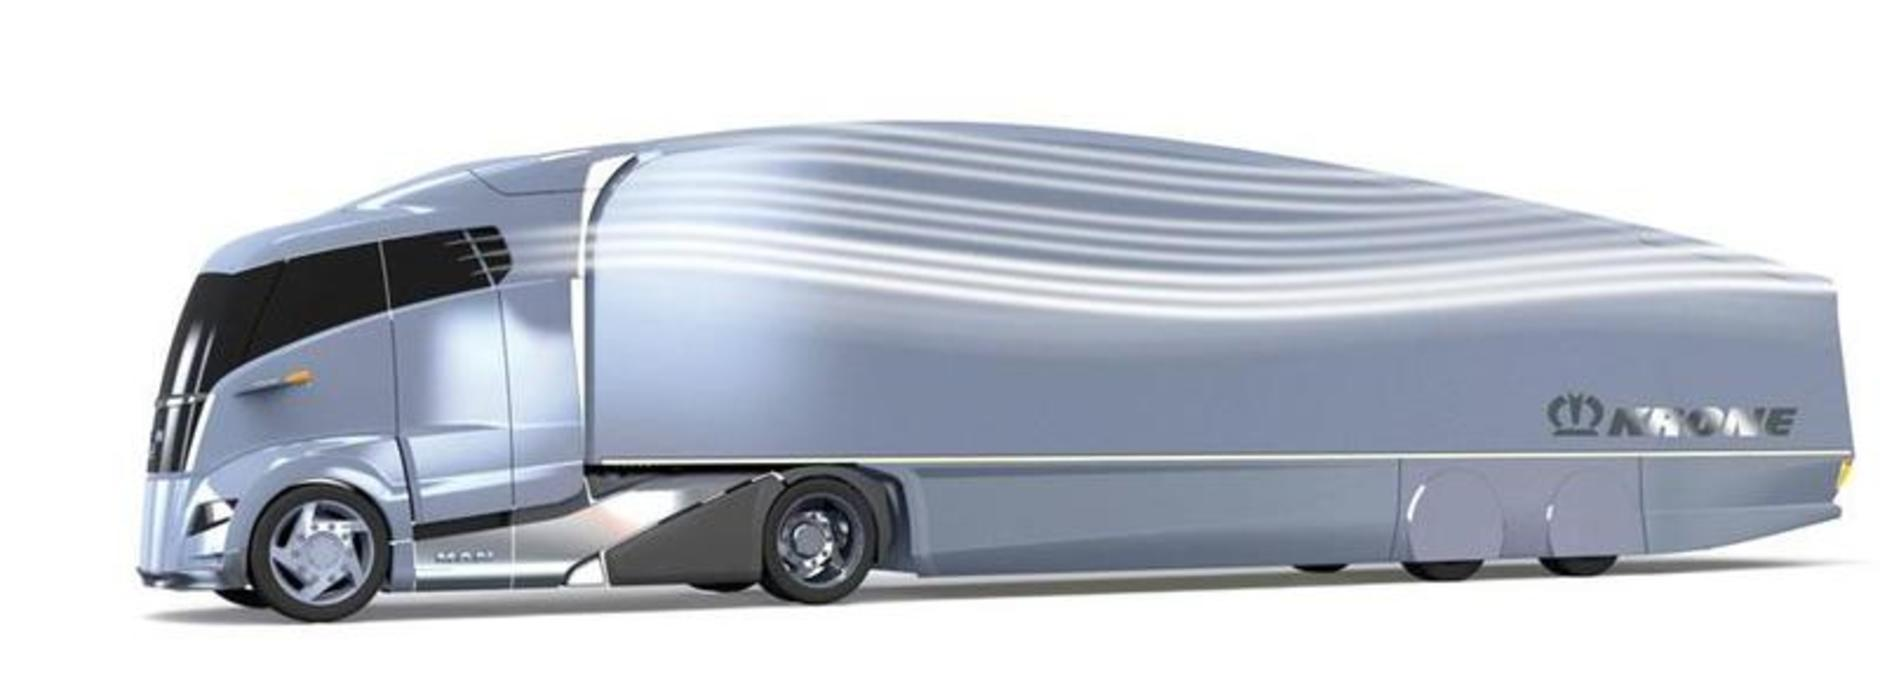 The Future Of Truck Design Commercial Motor